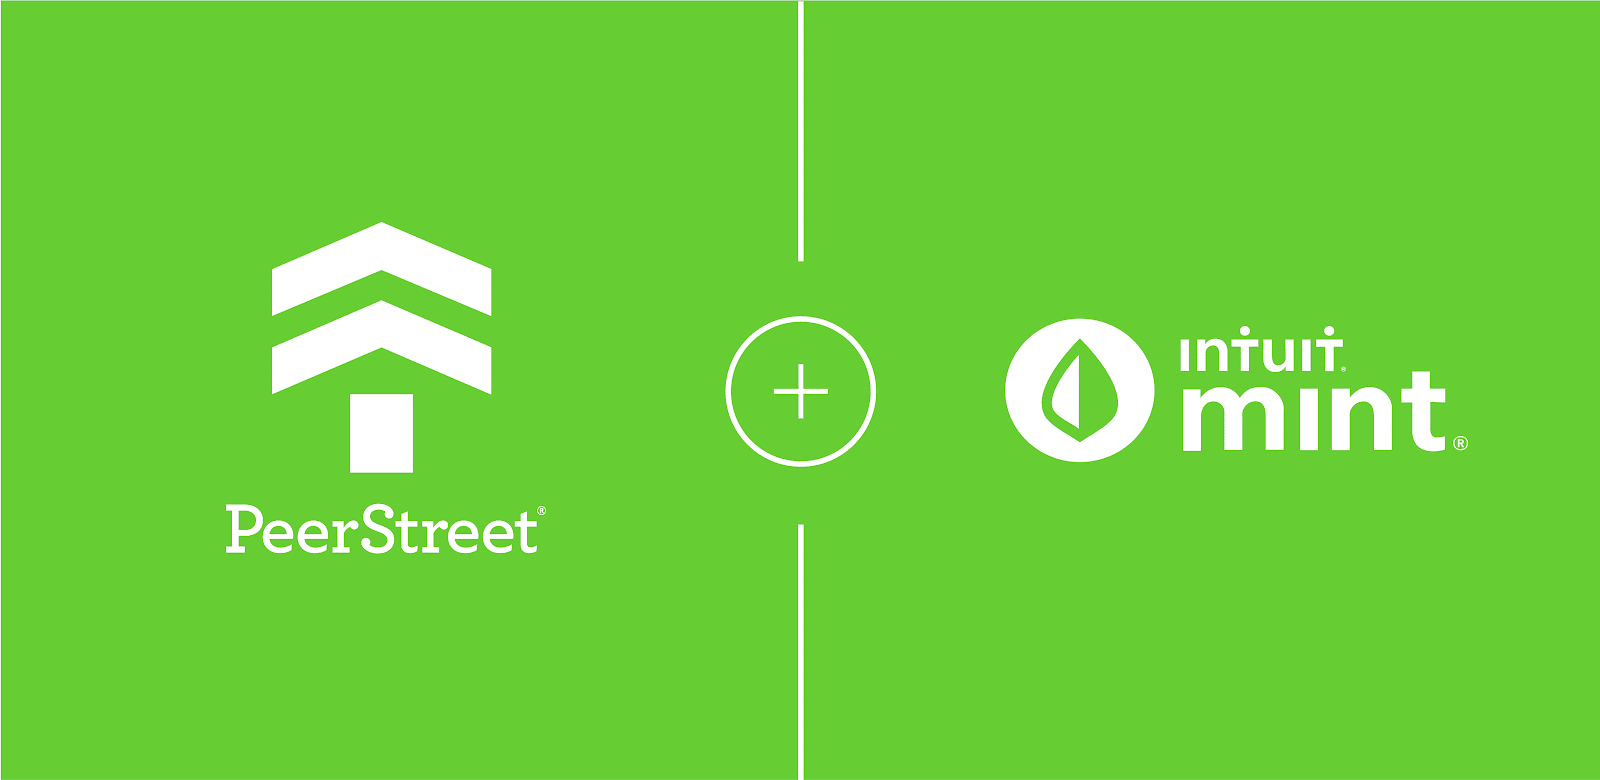 graphic of peer street integrating with mint